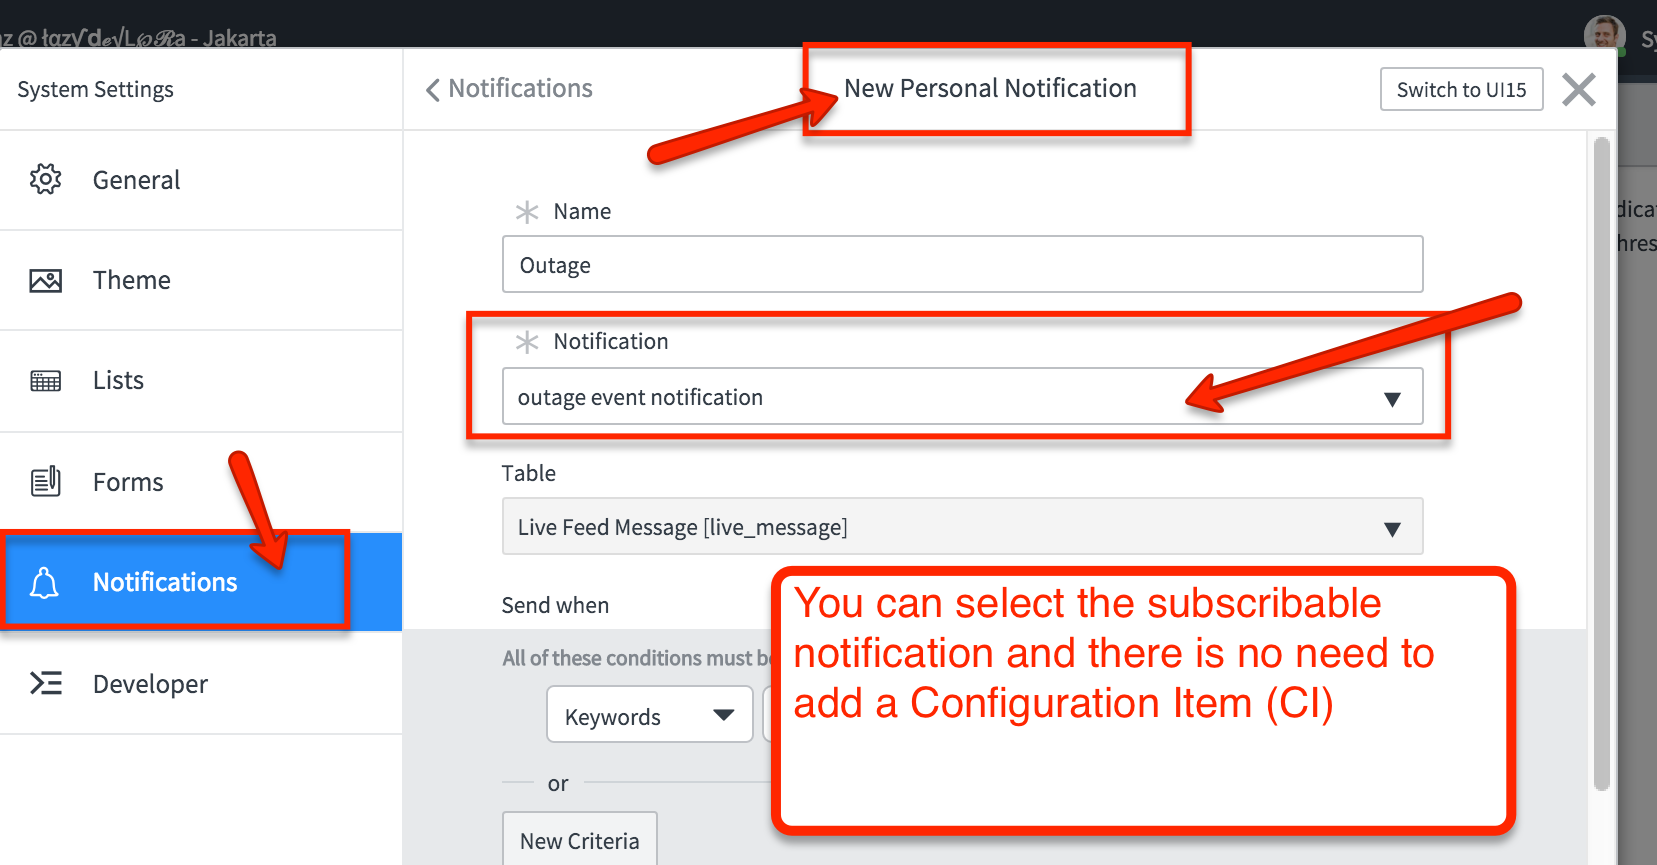 When adding a subscribable notification, it will not ask for a CI